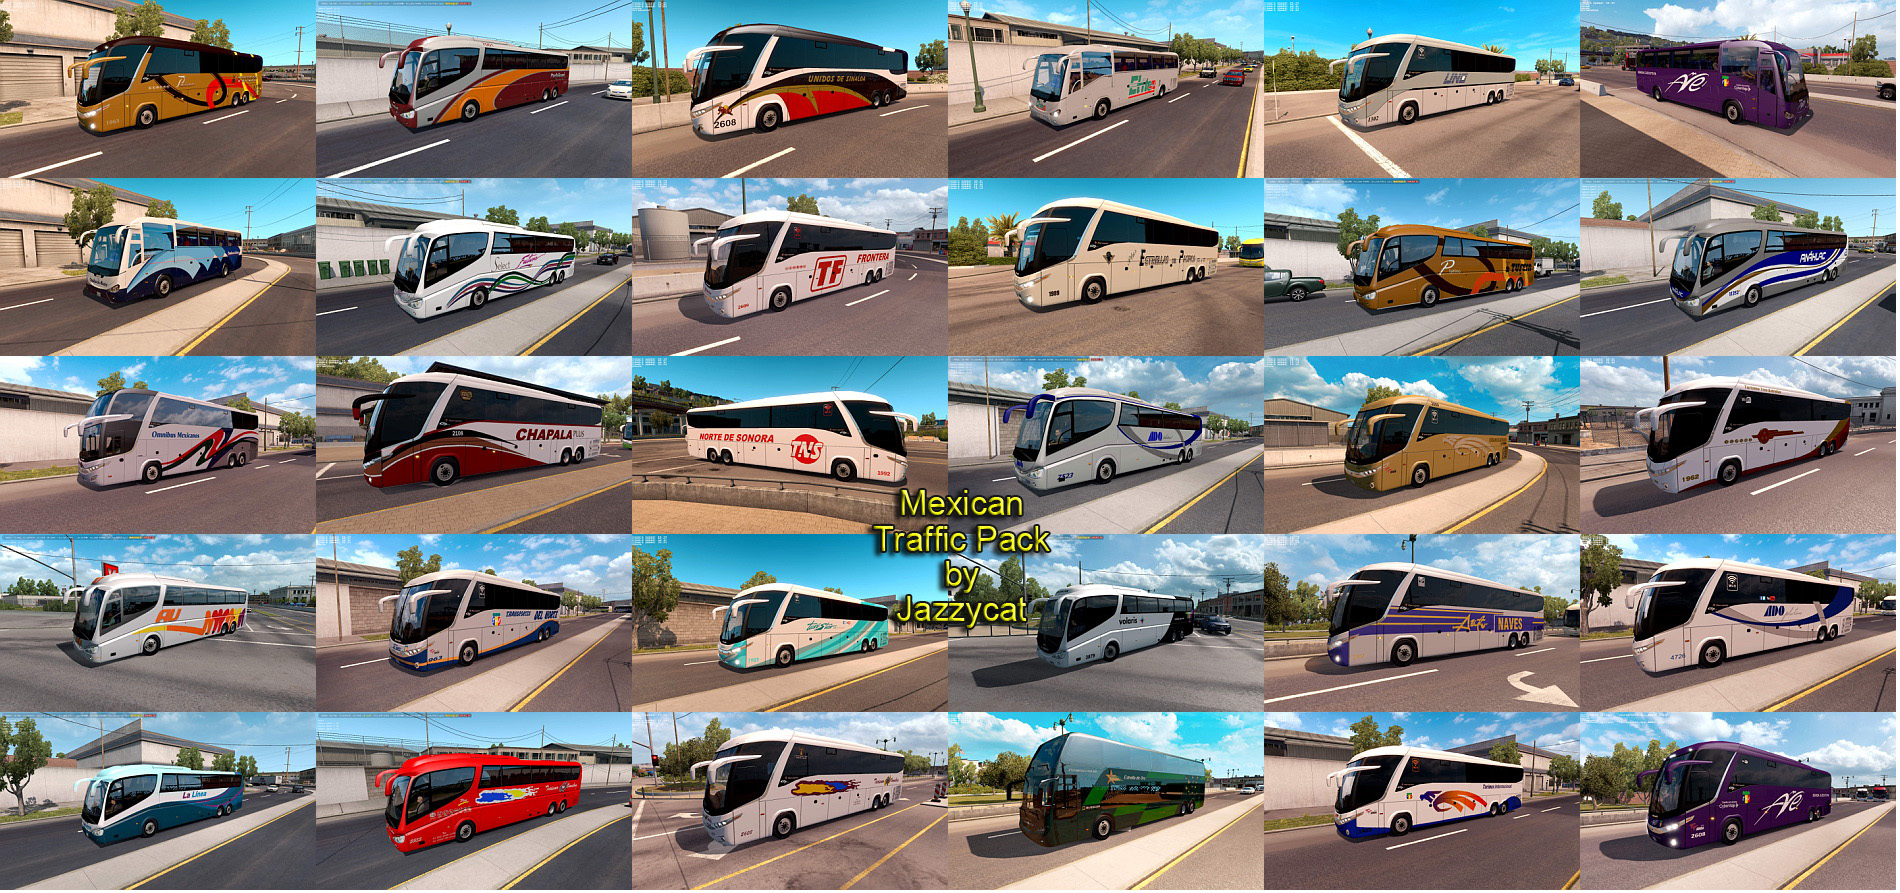 Mexican Traffic Pack v1 7 1 by Jazzycat (02 10 2018) - SCS